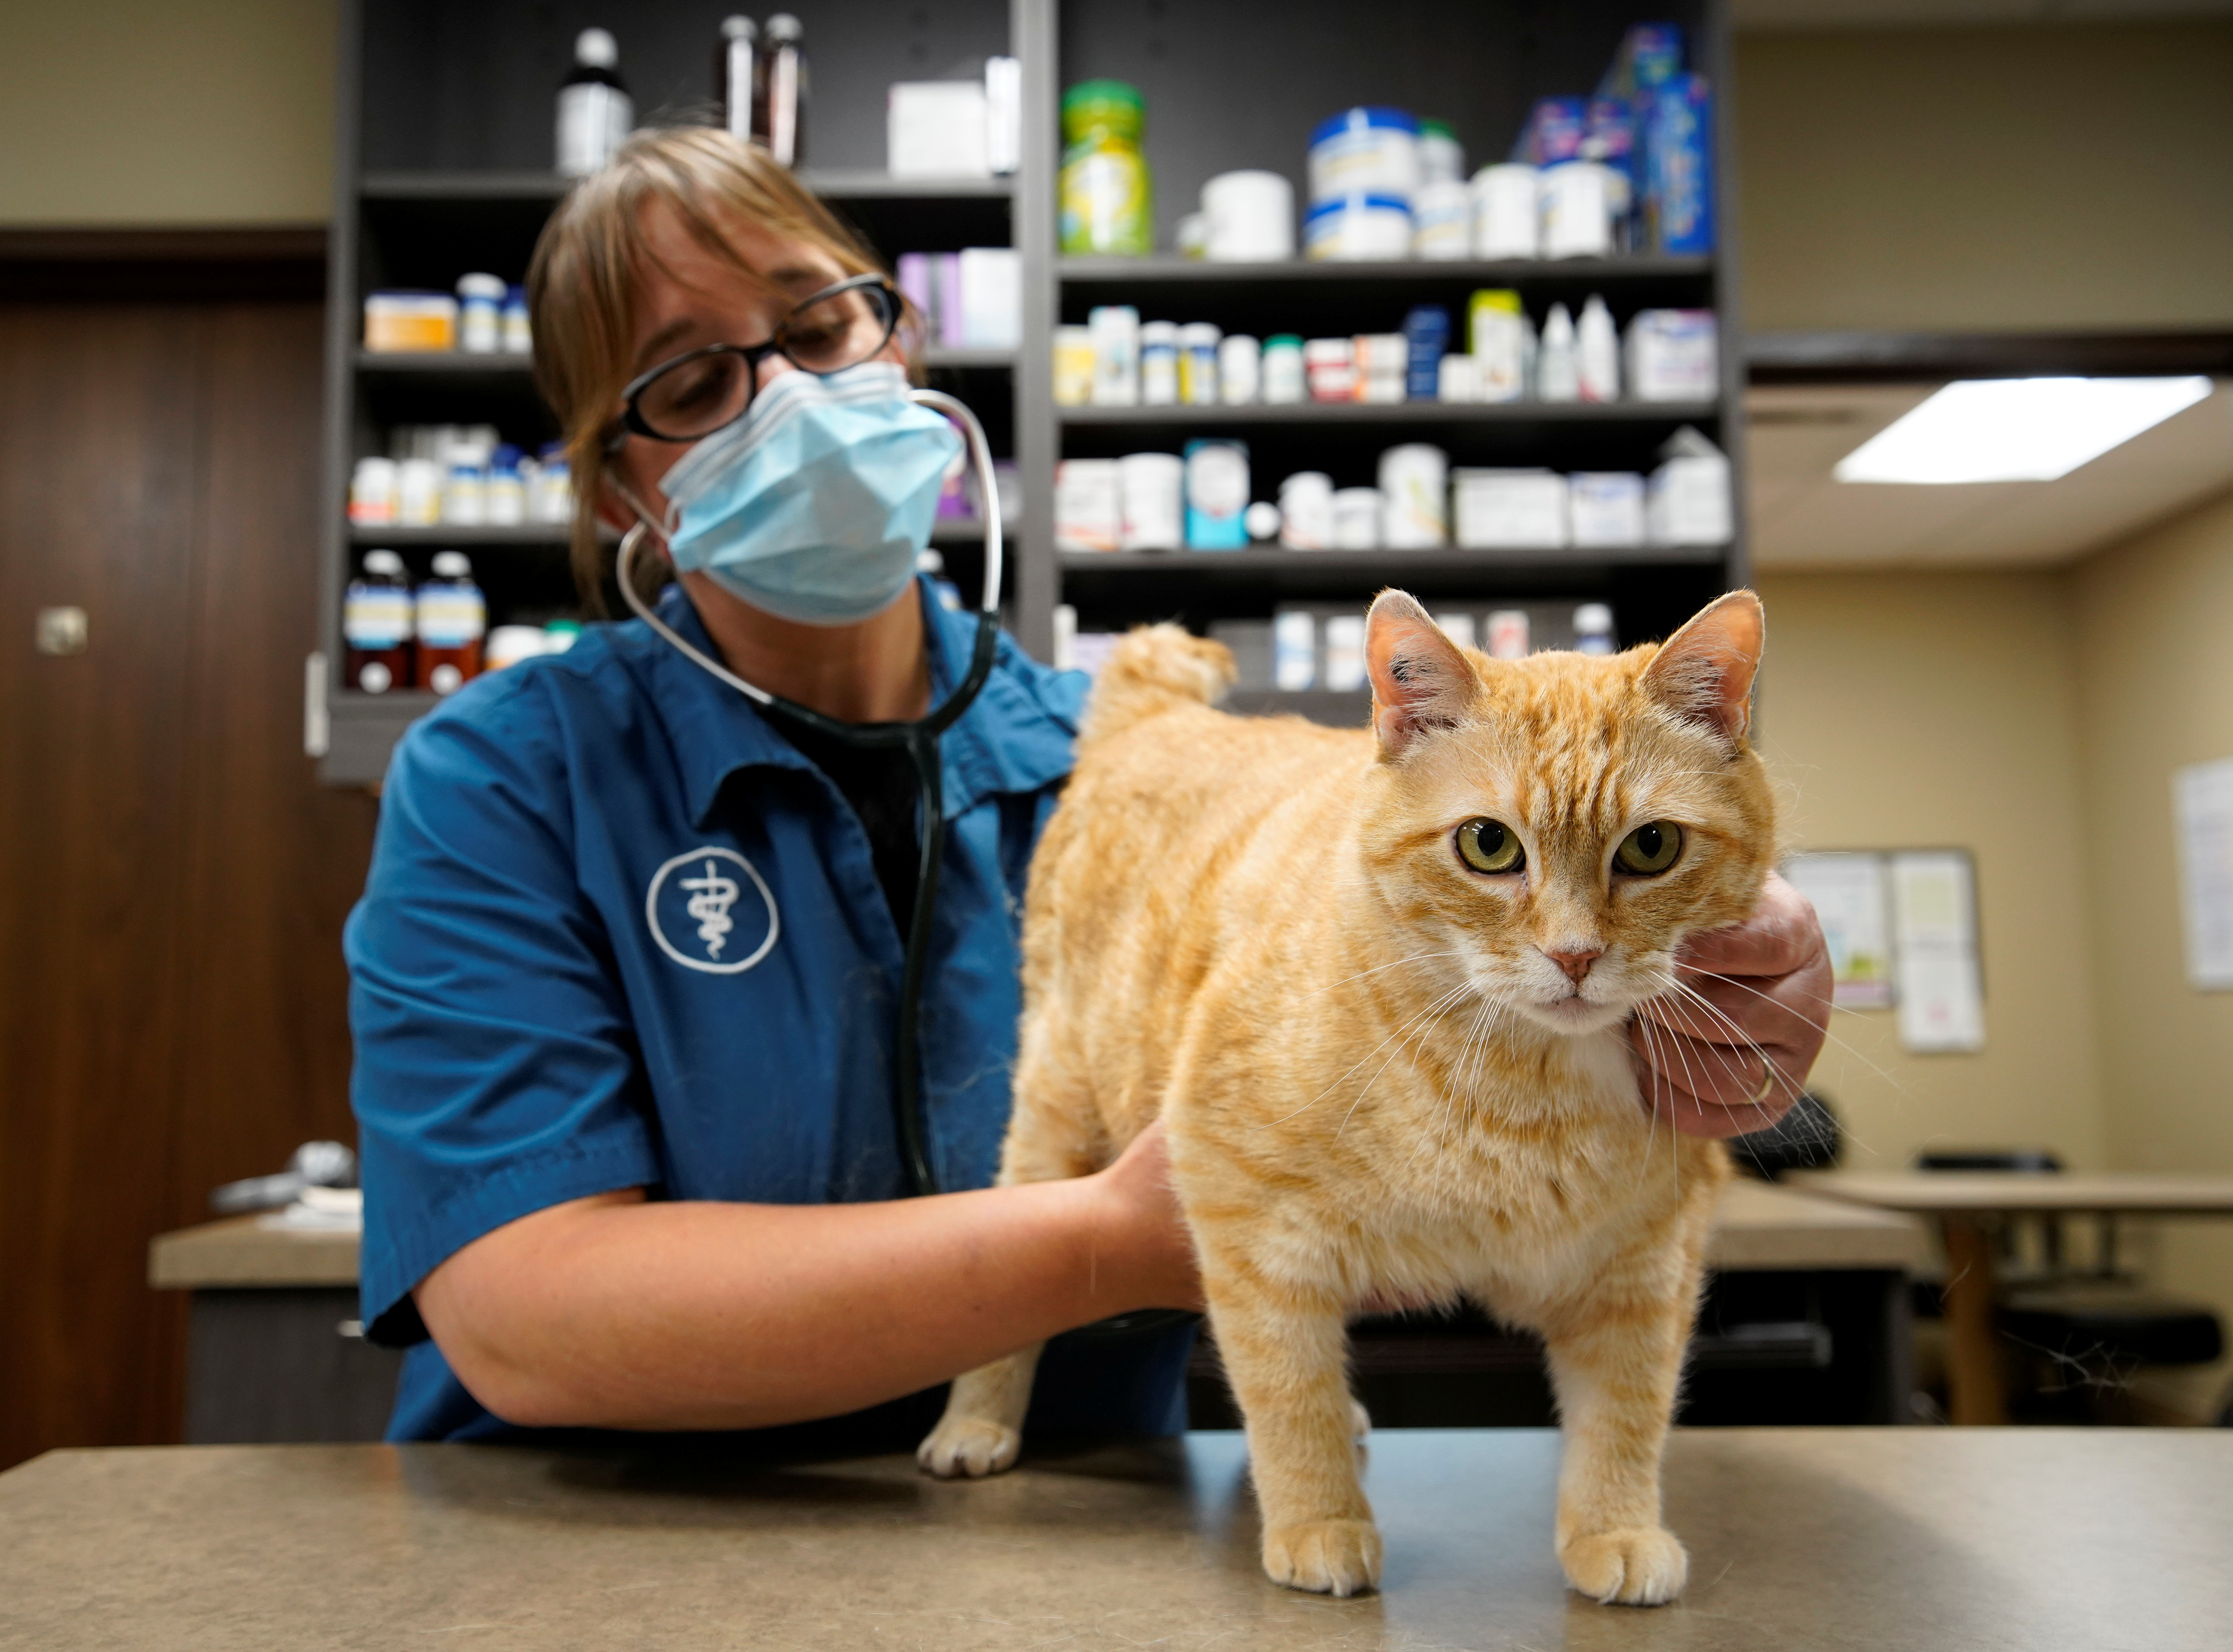 Dr. Liz Ruelle examines a cat at the Wild Rose Cat clinic in Calgary, Alberta, Canada, July 14, 2021. Dr. Ruelle uses a new app called Tably that reads cat's faces and helps her monitor a cat's health. REUTERS/Todd Korol